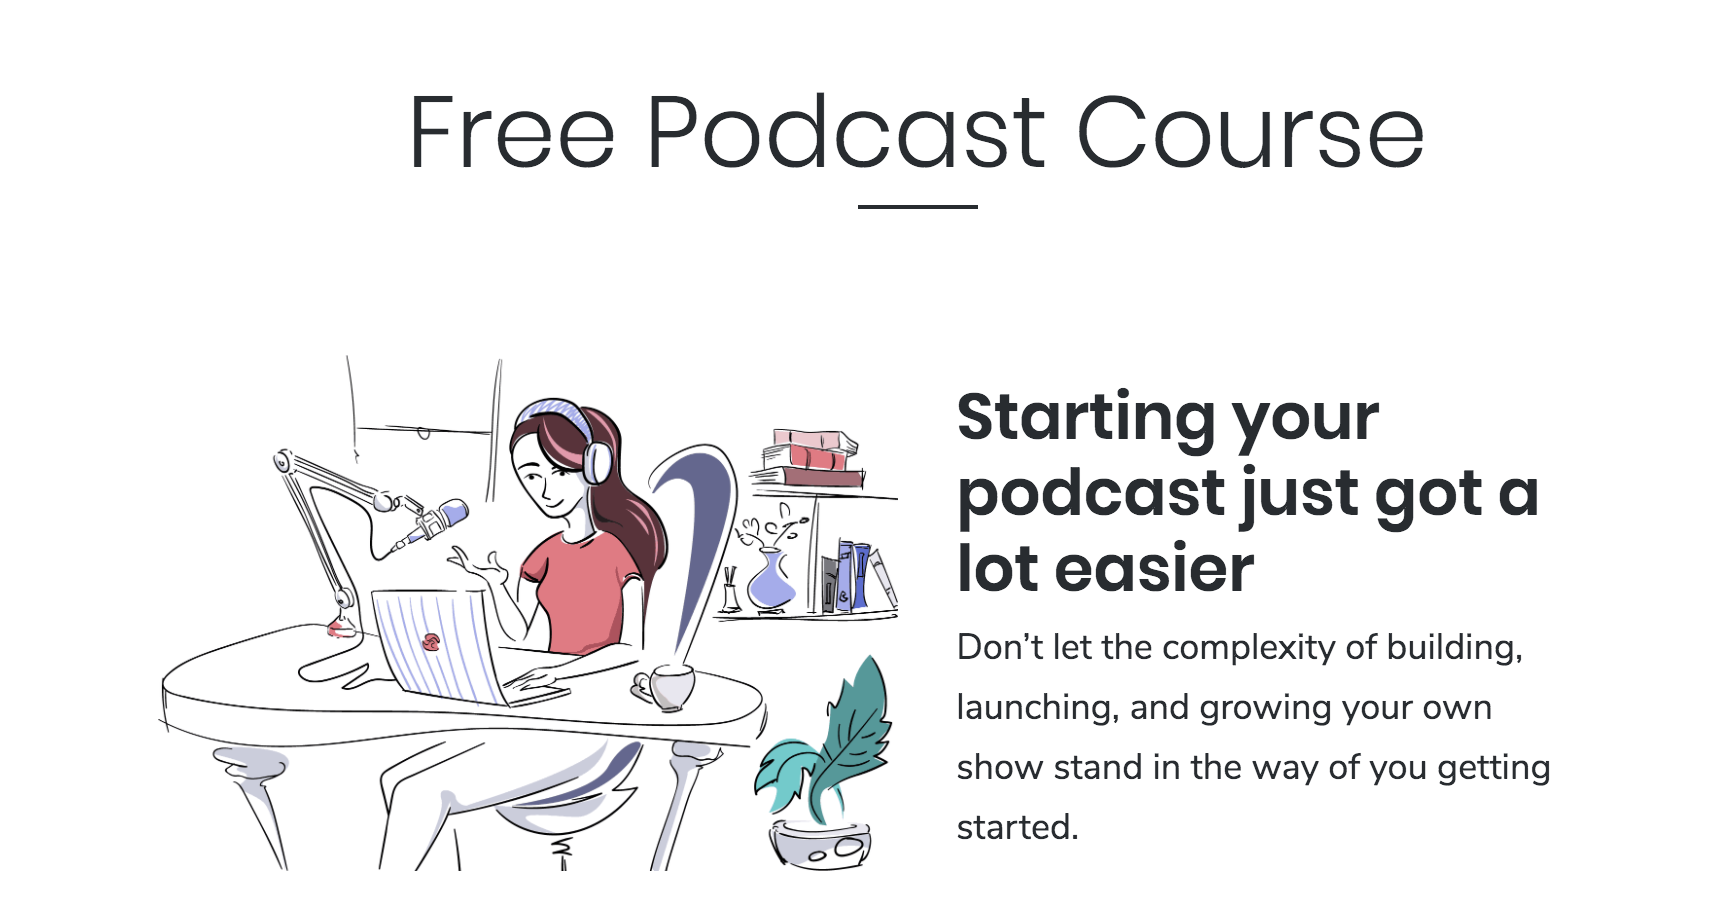 free podcast course